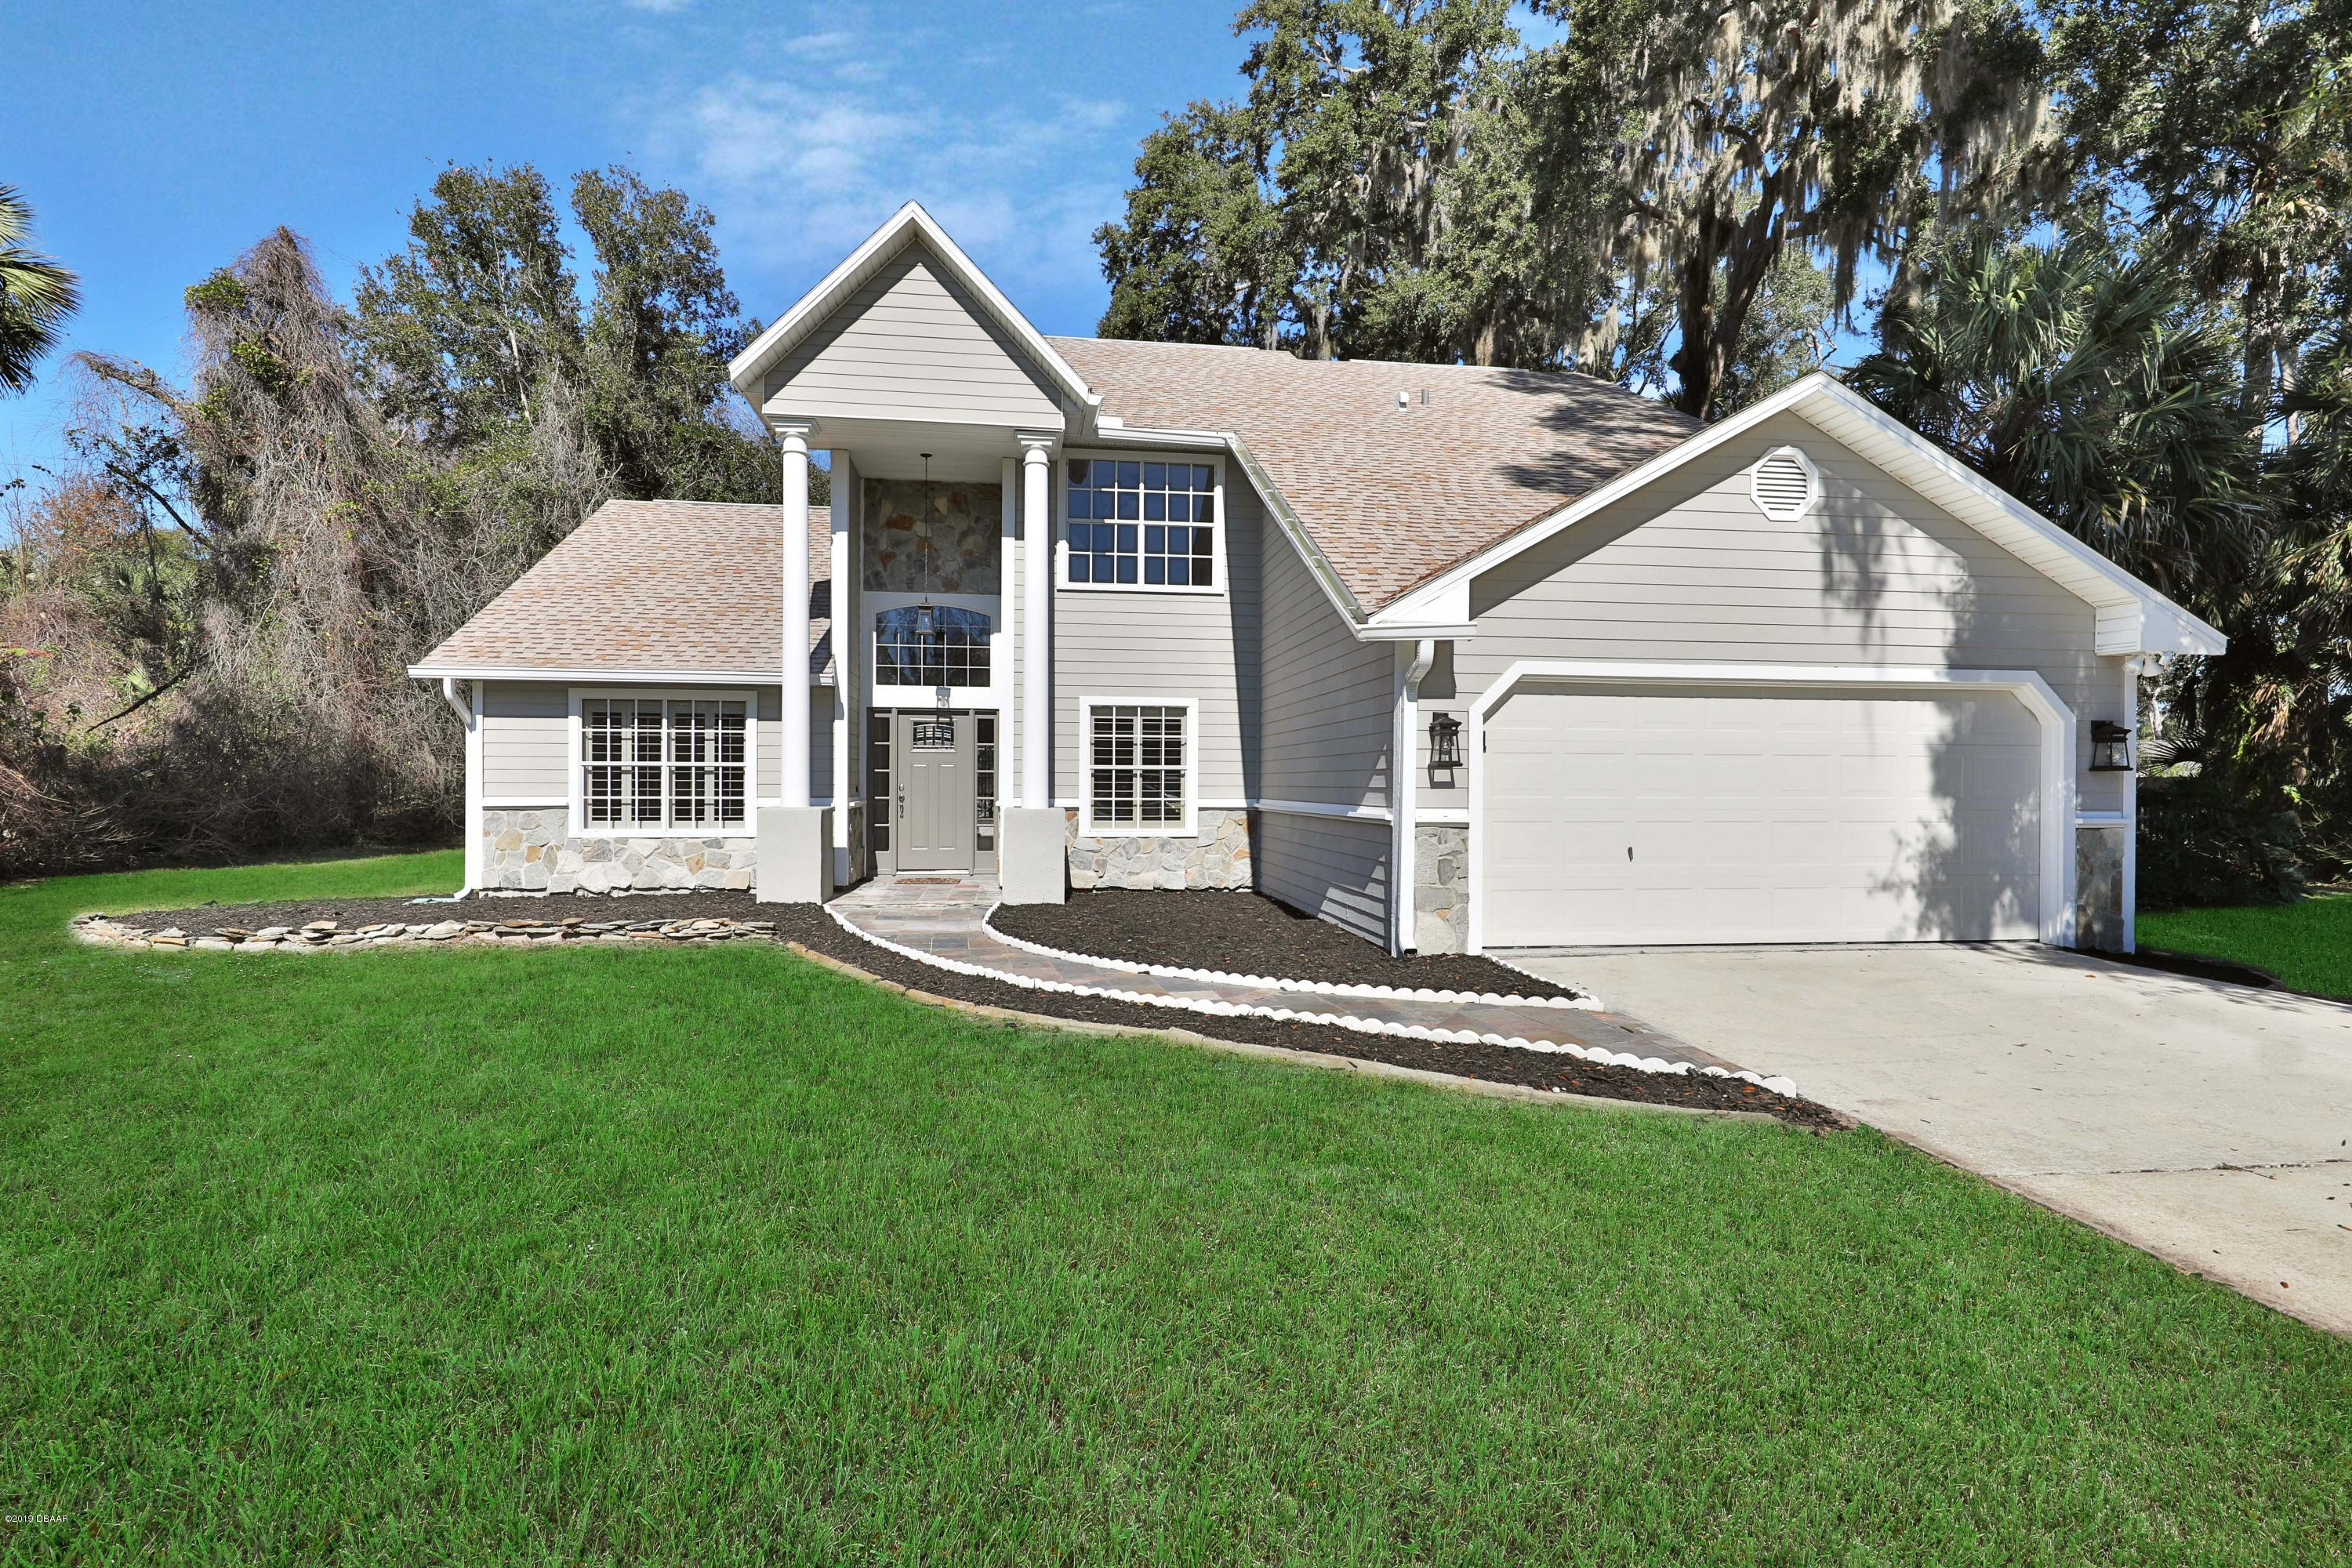 1395  Aleut Lane 32174 - One of Ormond Beach Homes for Sale